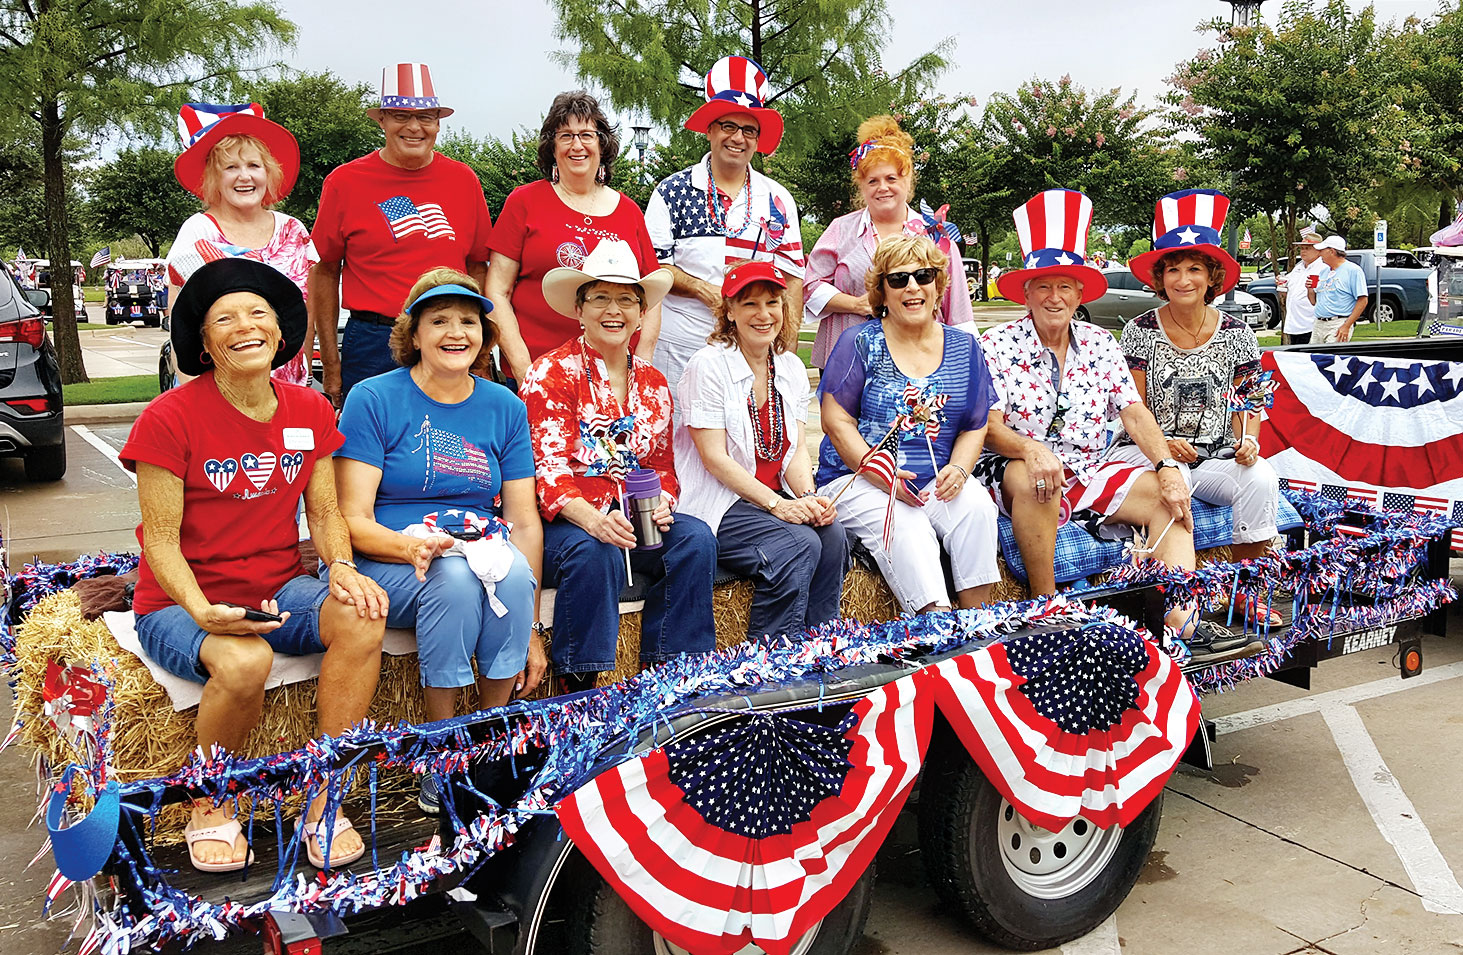 The choir ladies and their 4th of July float